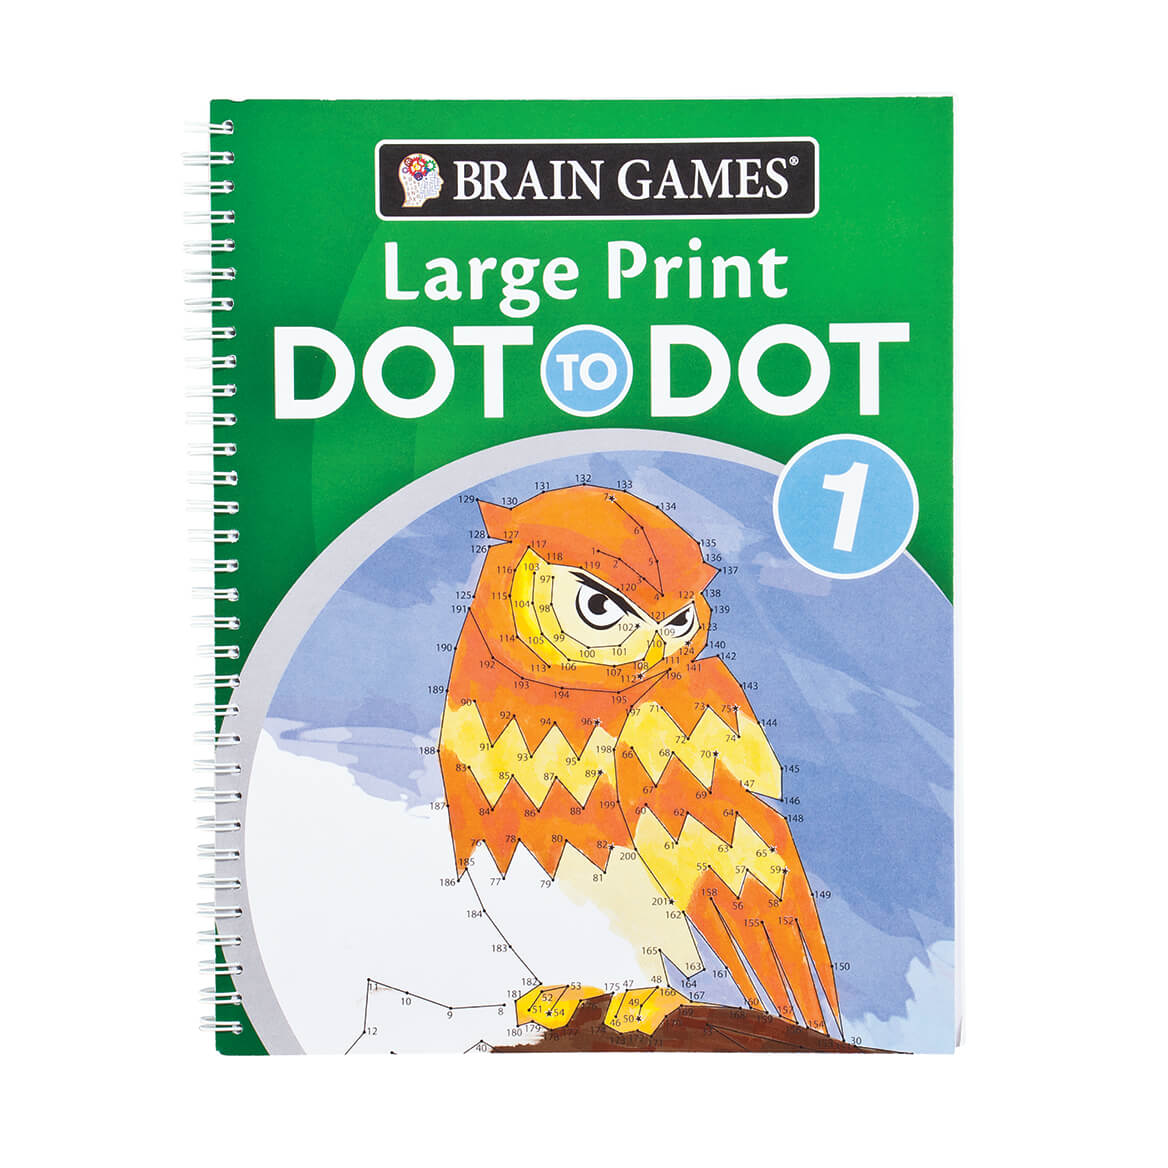 Brain Games Large Print Dot To Dot Version 1 Owl Cover